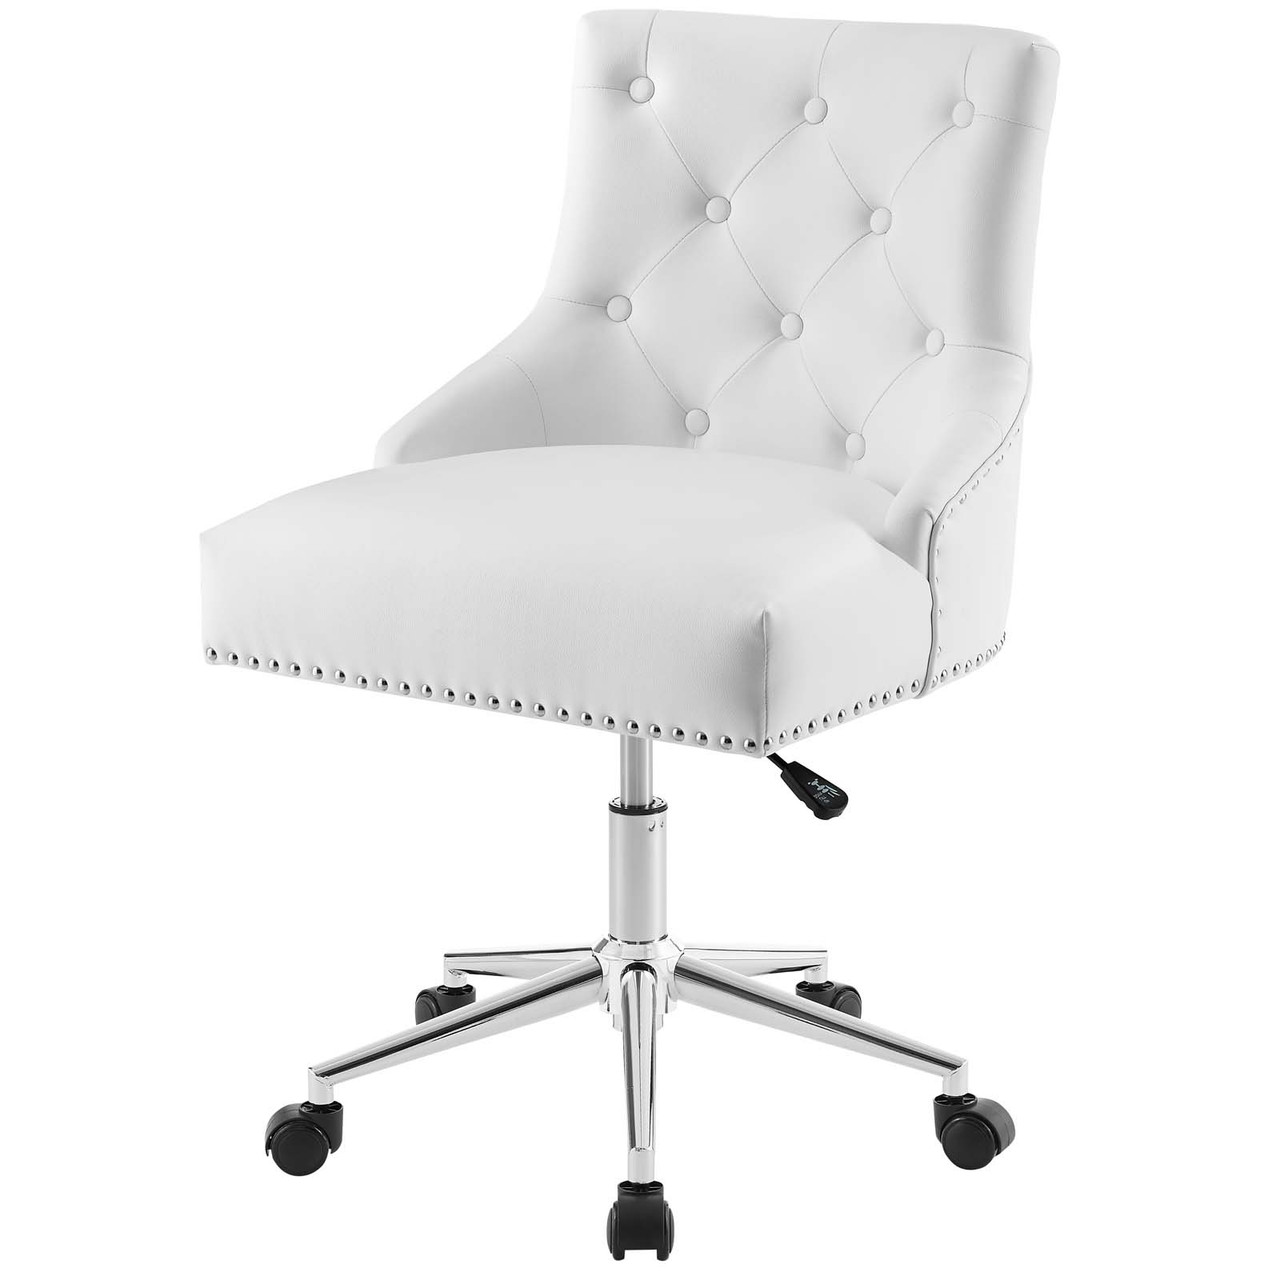 Regent Tufted Button Swivel Faux Leather Office Chair Faux Vinyl Leather Aluminum White 17859 House Bound